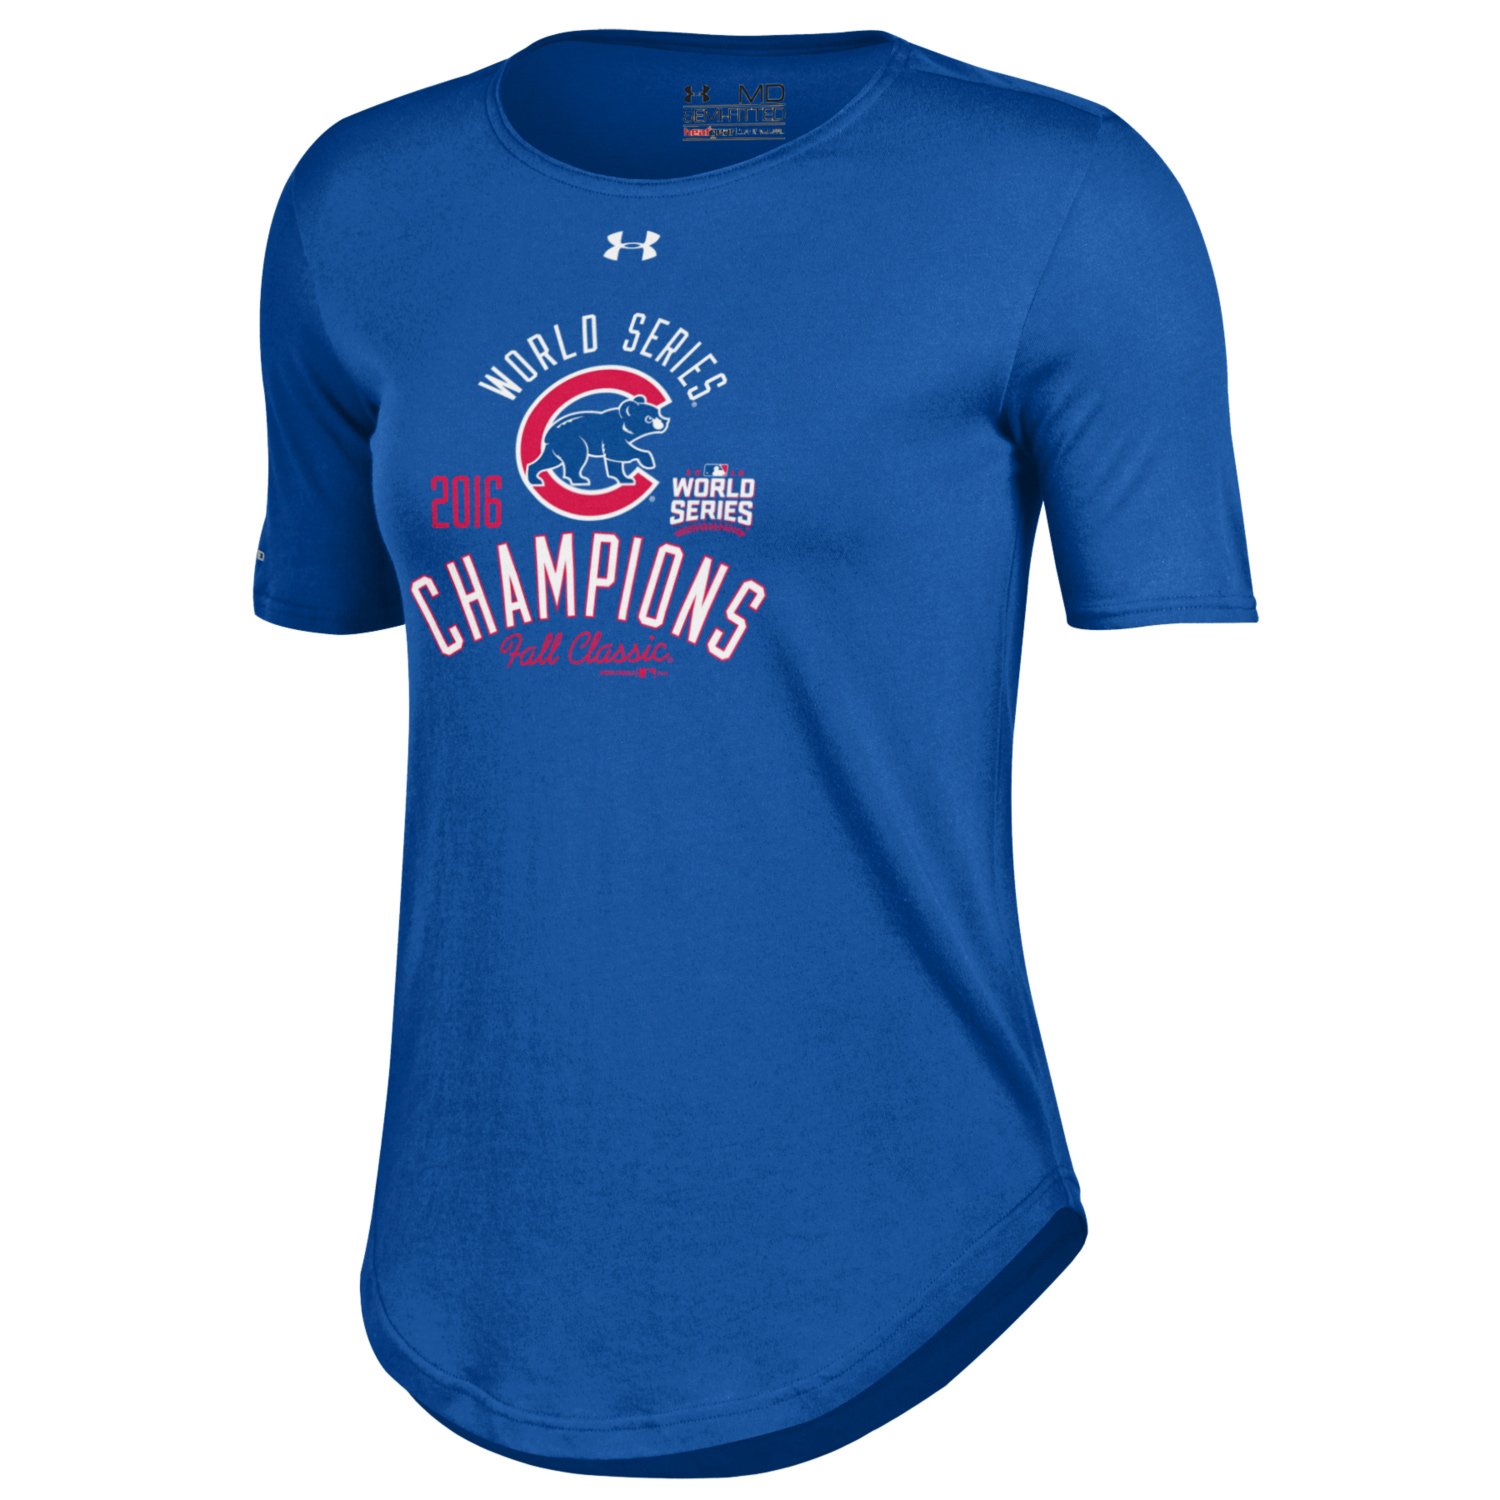 Chicago Cubs Under Armour Women's 2016 World Series Champions Performance T-Shirt - Royal